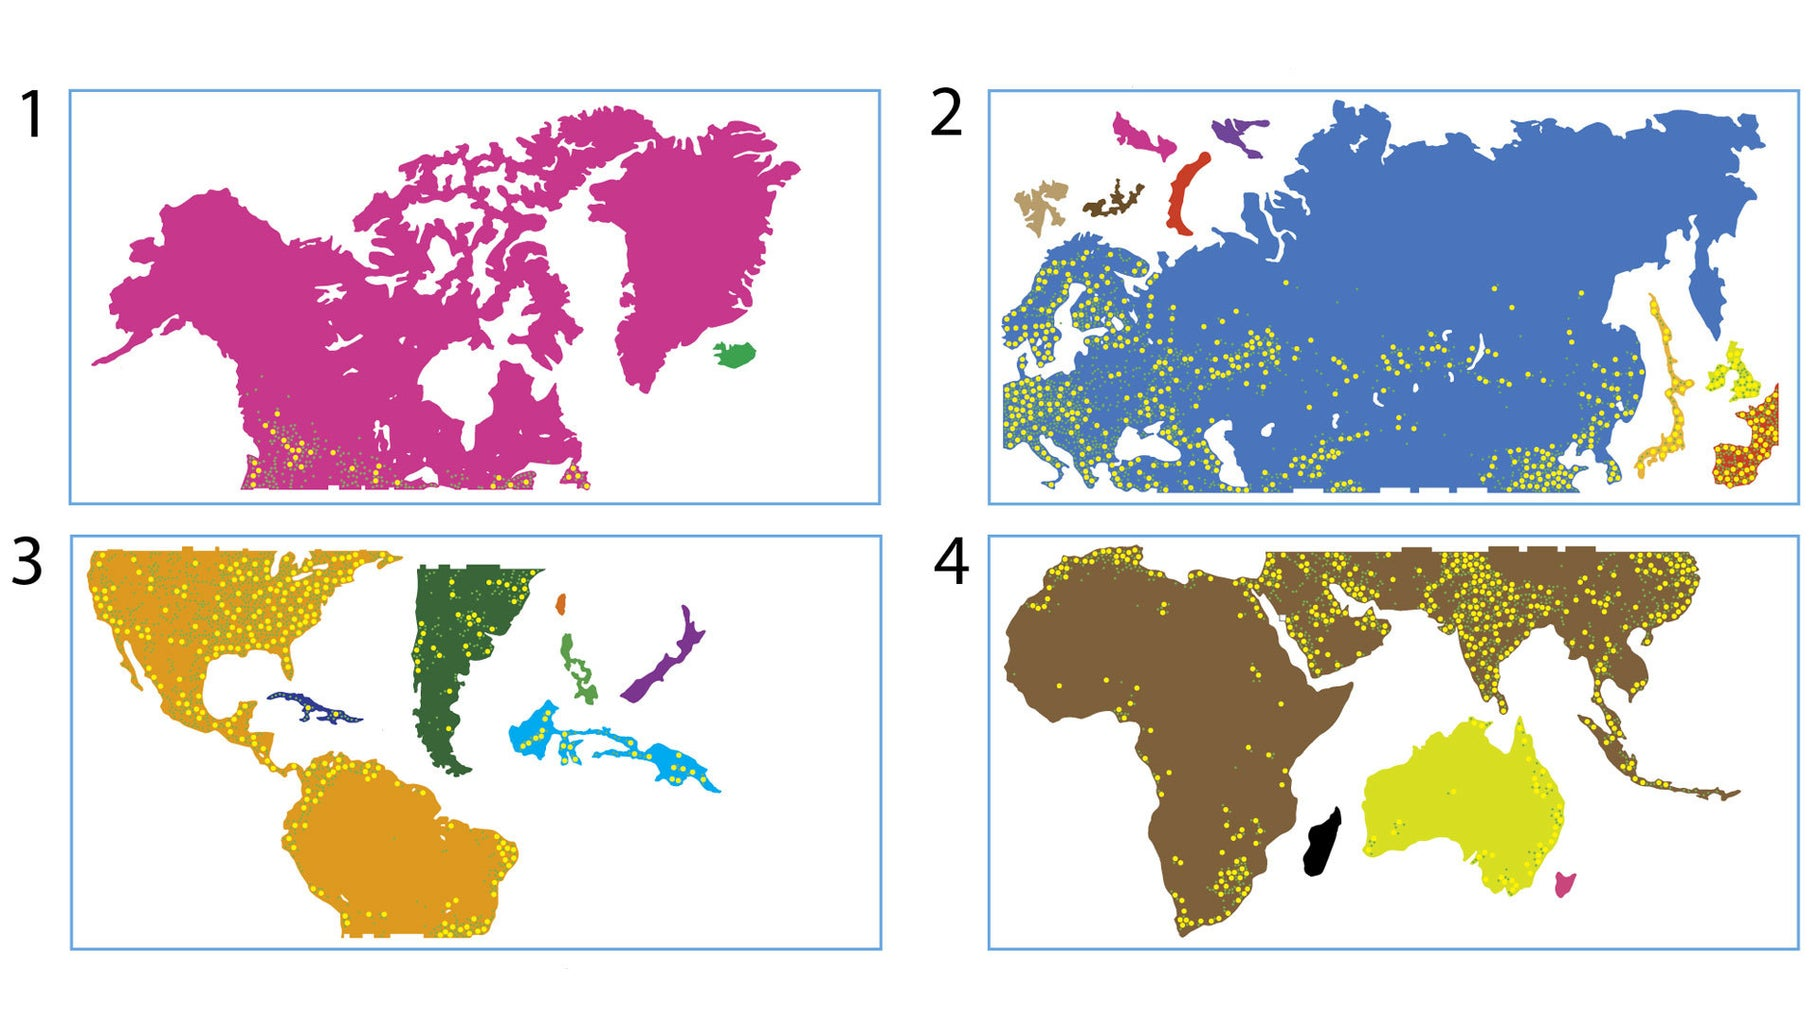 Choosing a Map Projection & Preparing for Cutting